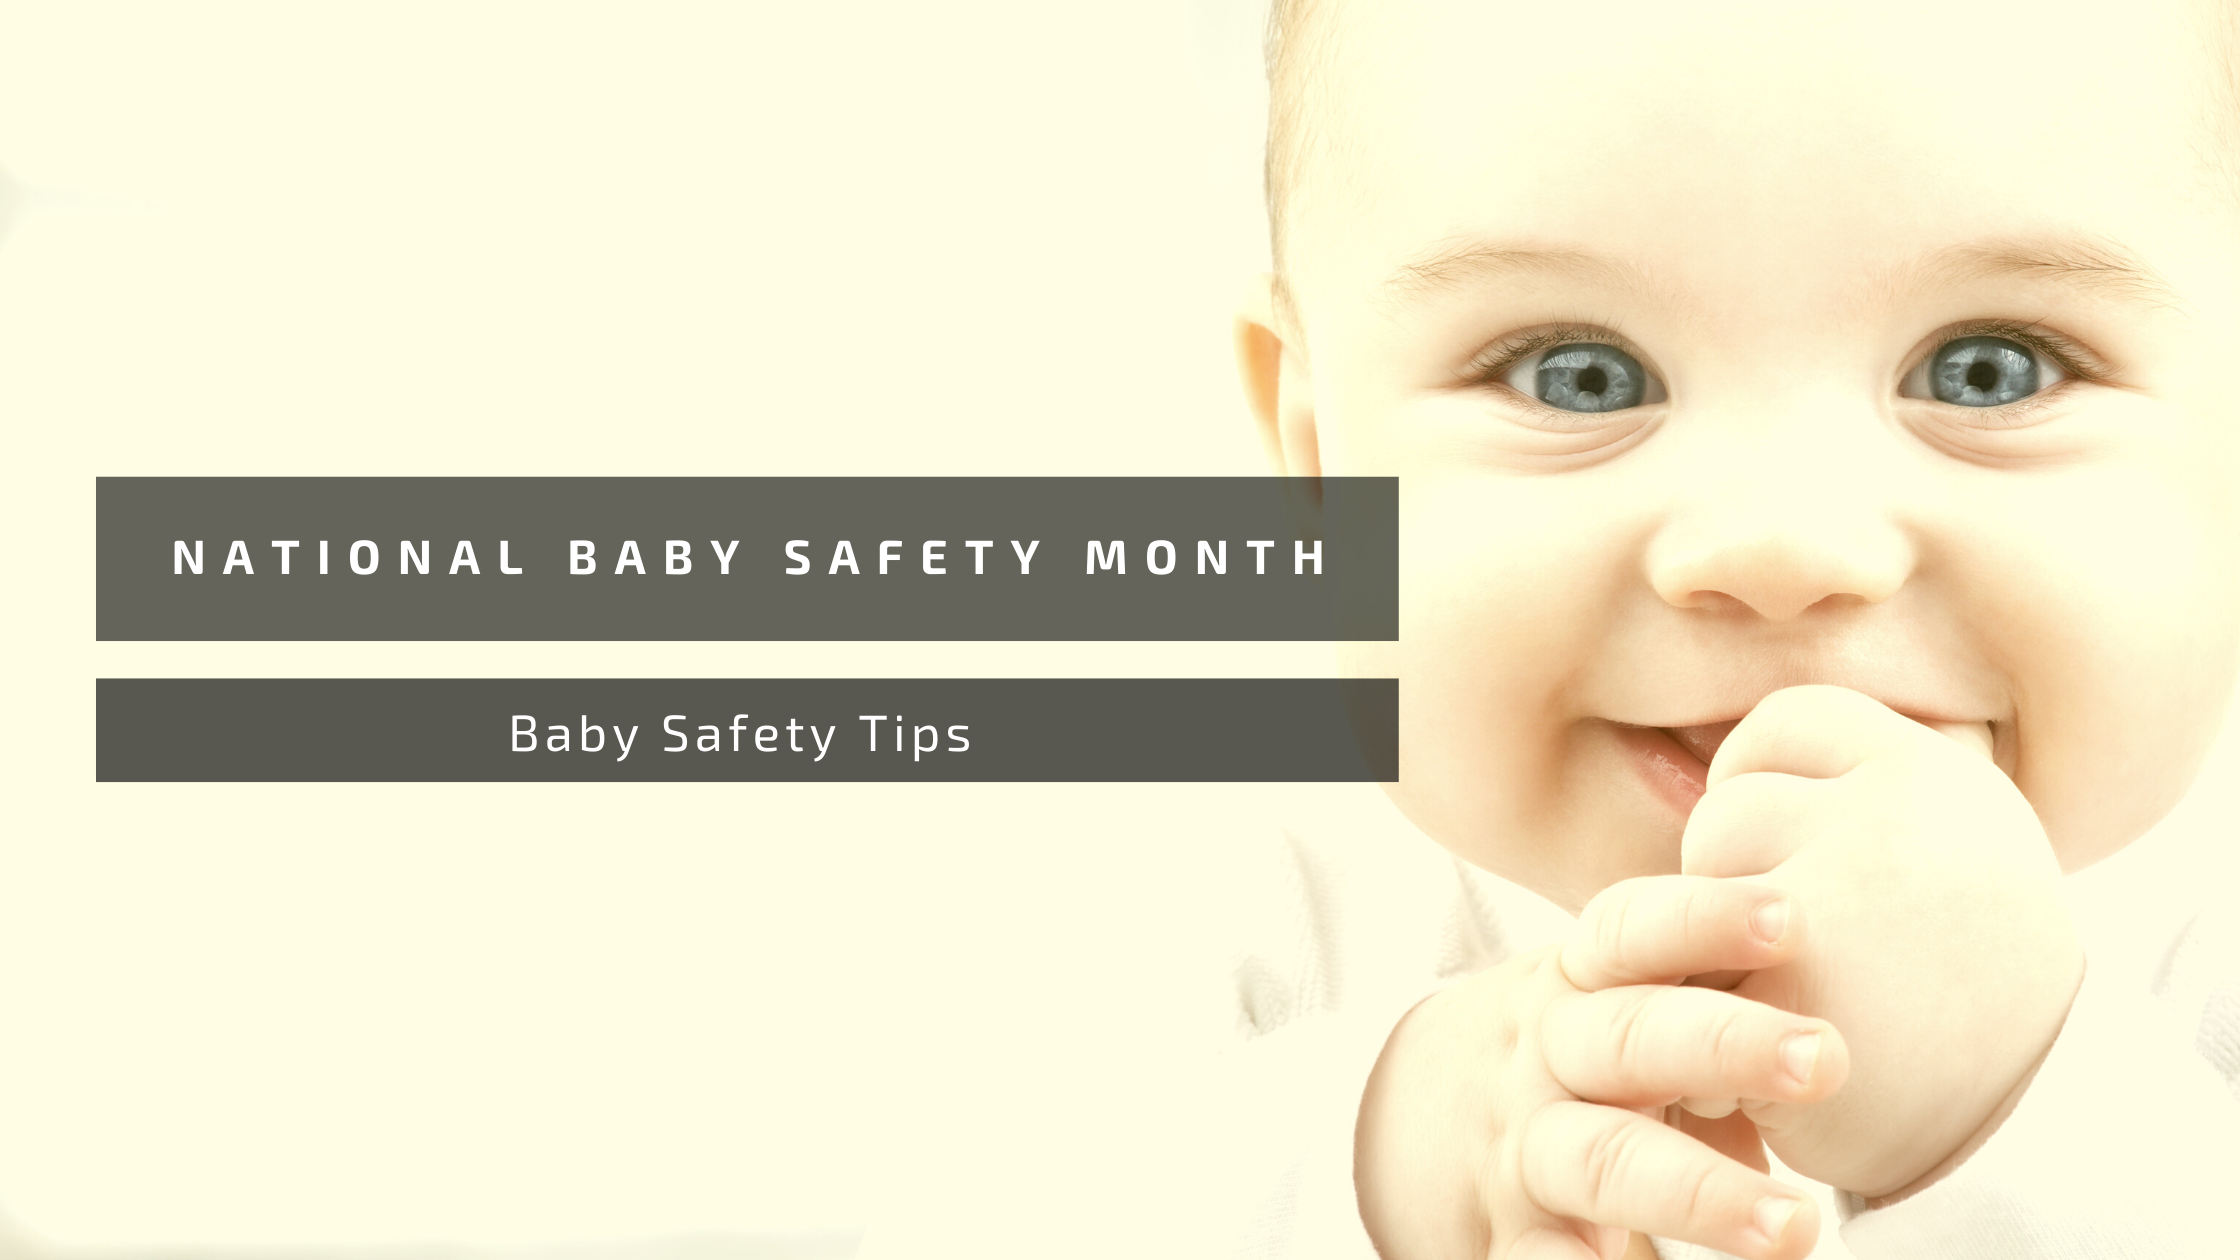 National baby safety month